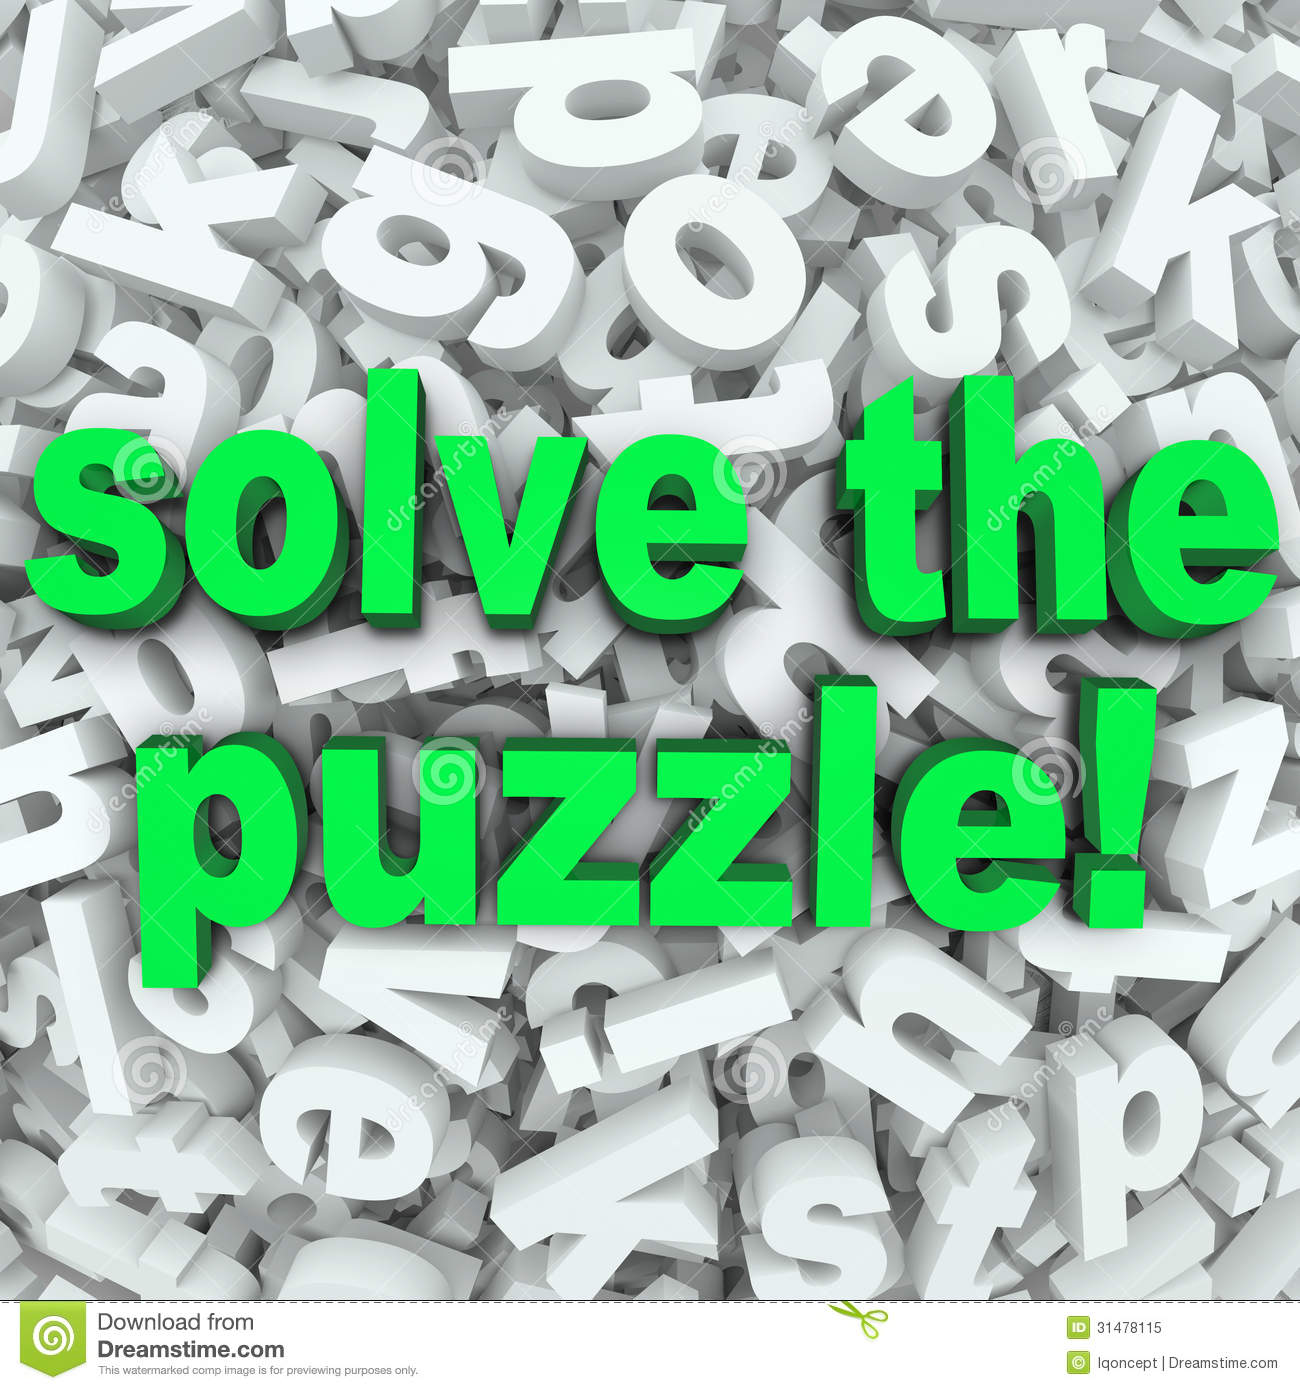 Solve The Puzzle Word Search Jumble Difficult Letter Challenge Royalty Free Stock Photo